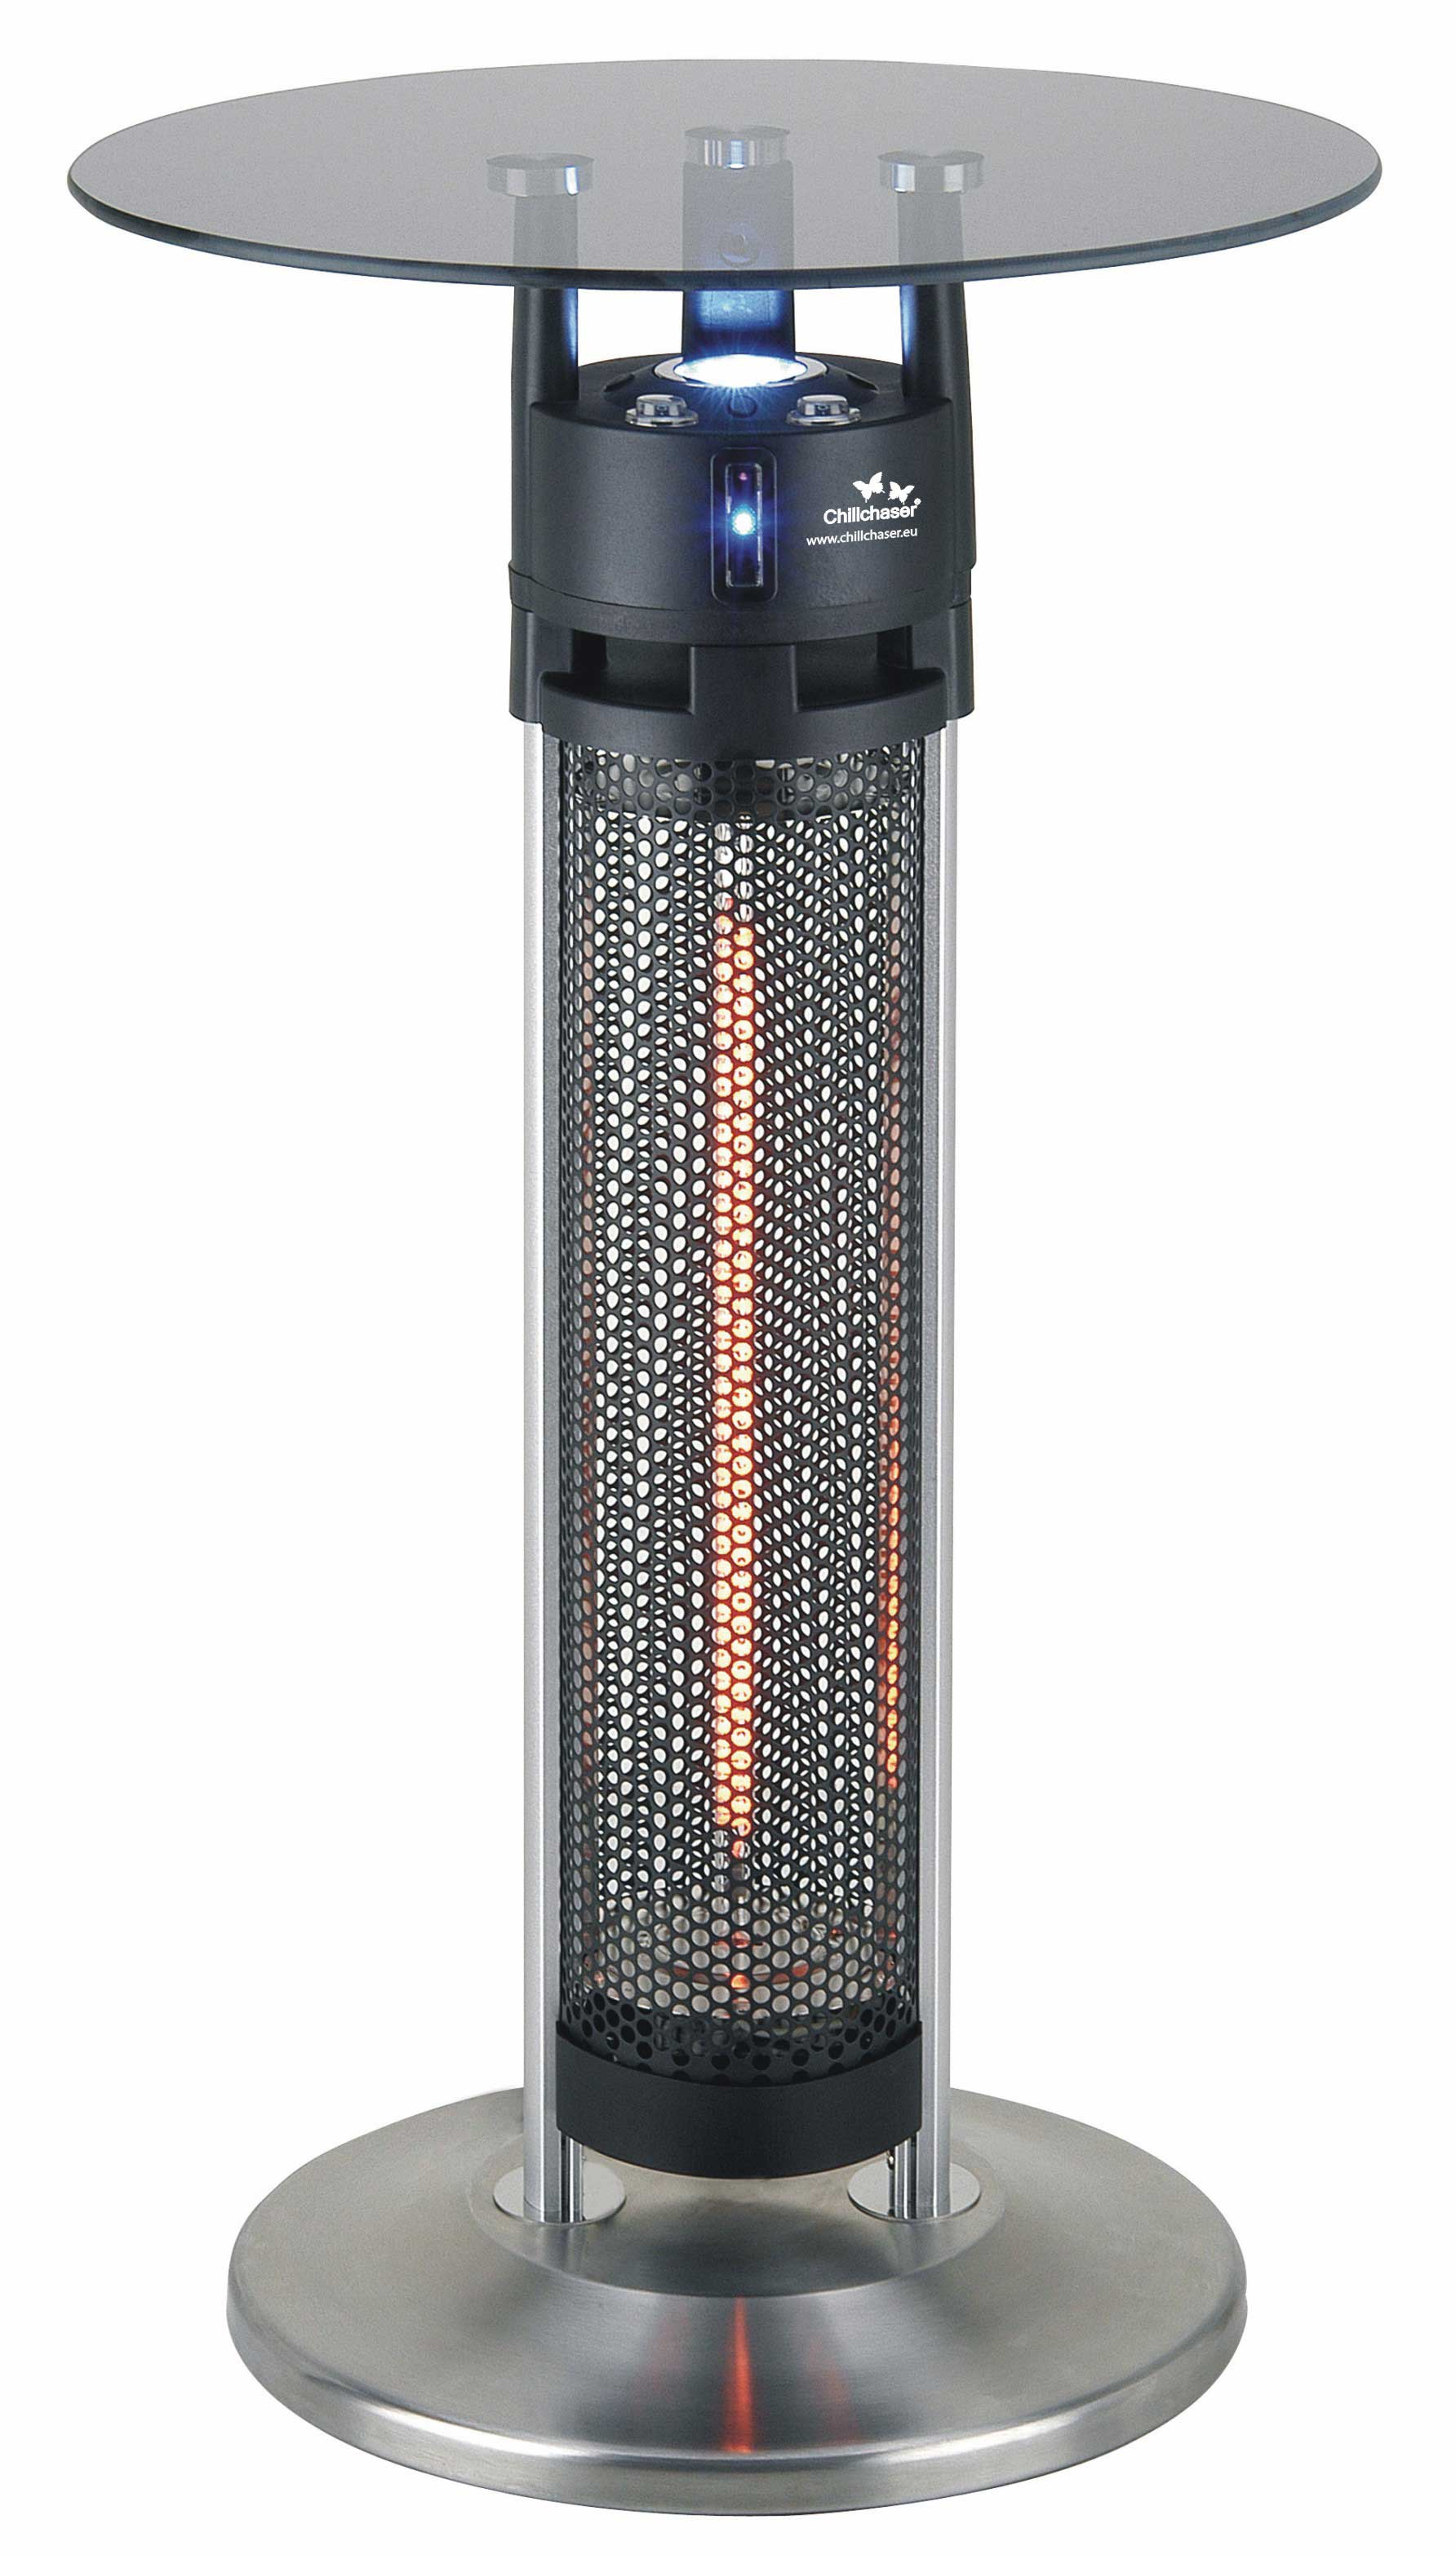 Cyclops Ii 1 6kw Ultra Low Glare Infrared Heater Table